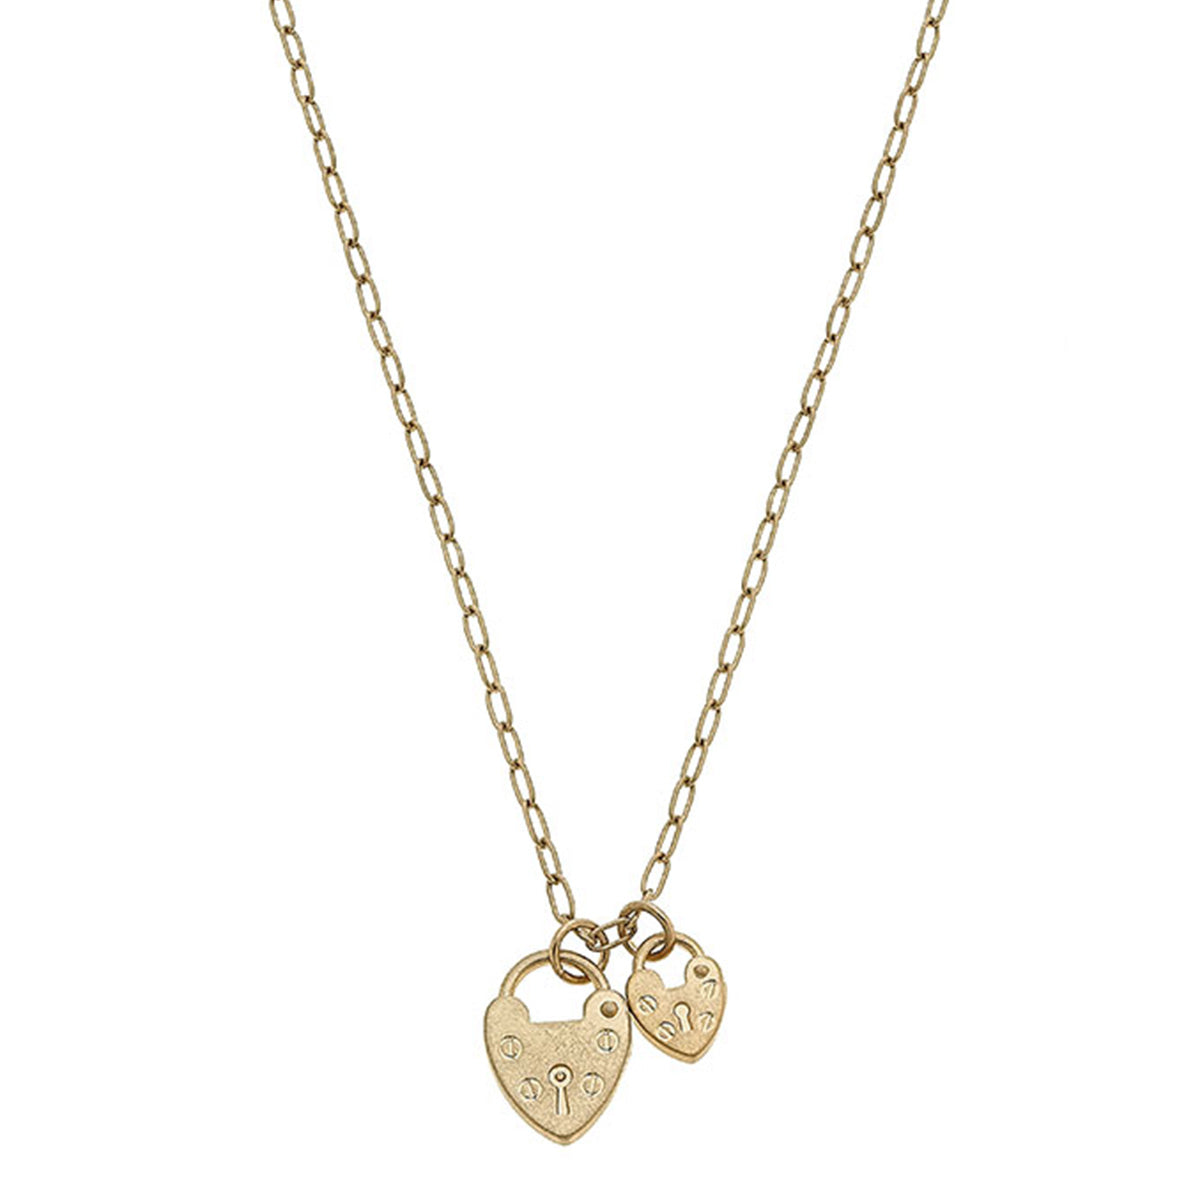 Mia Heart Padlock Charm Necklace in Worn Gold